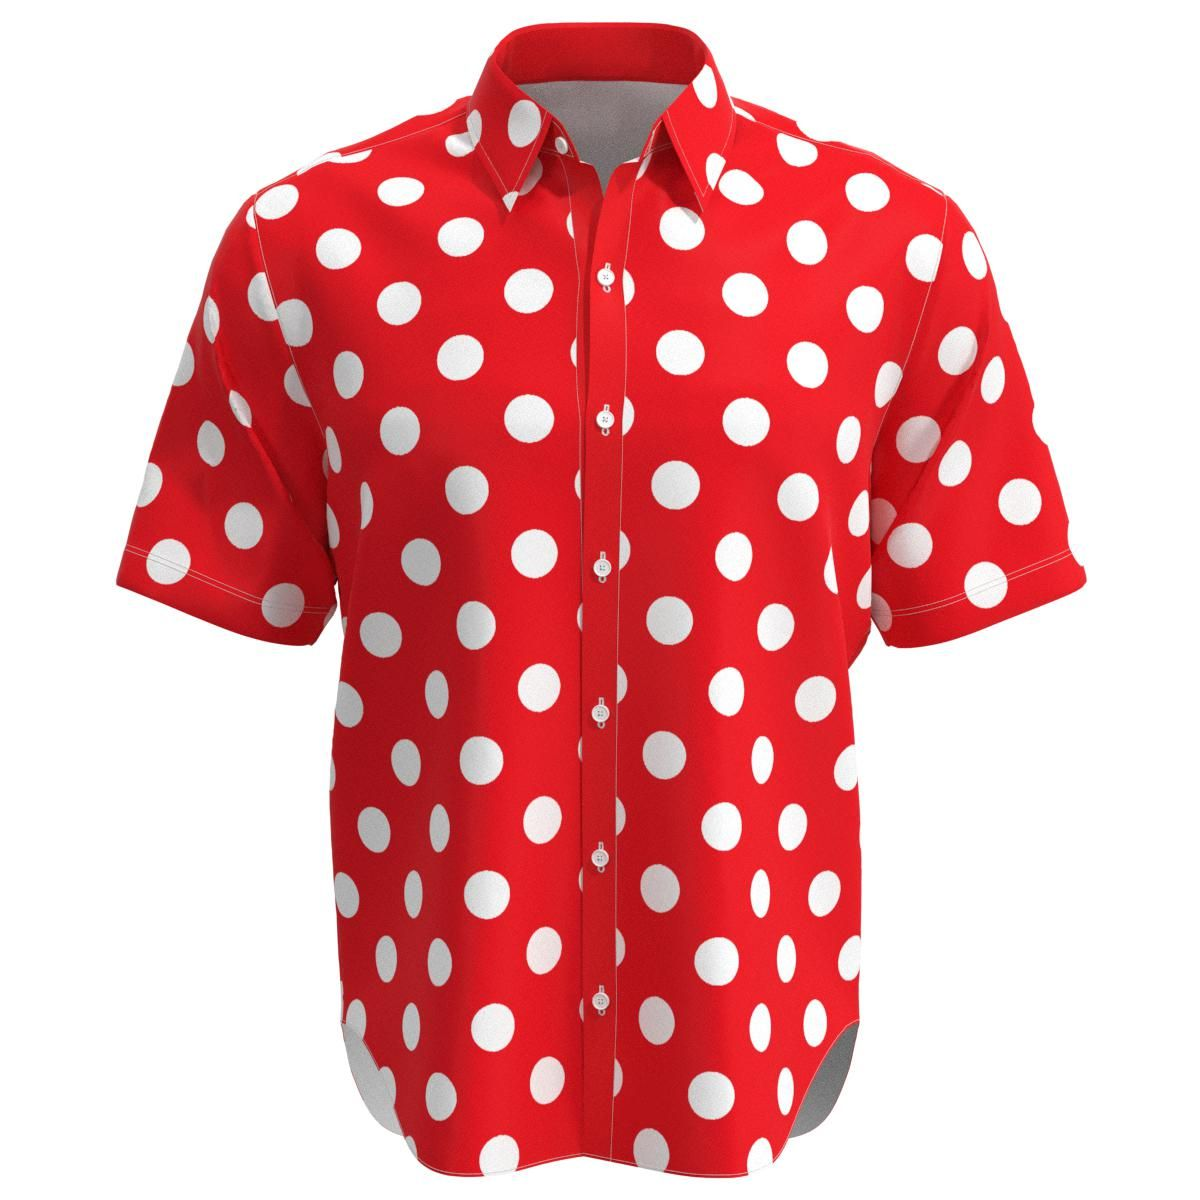 Polka Dot White And Red Bowtie  Long Sleeve Thermal